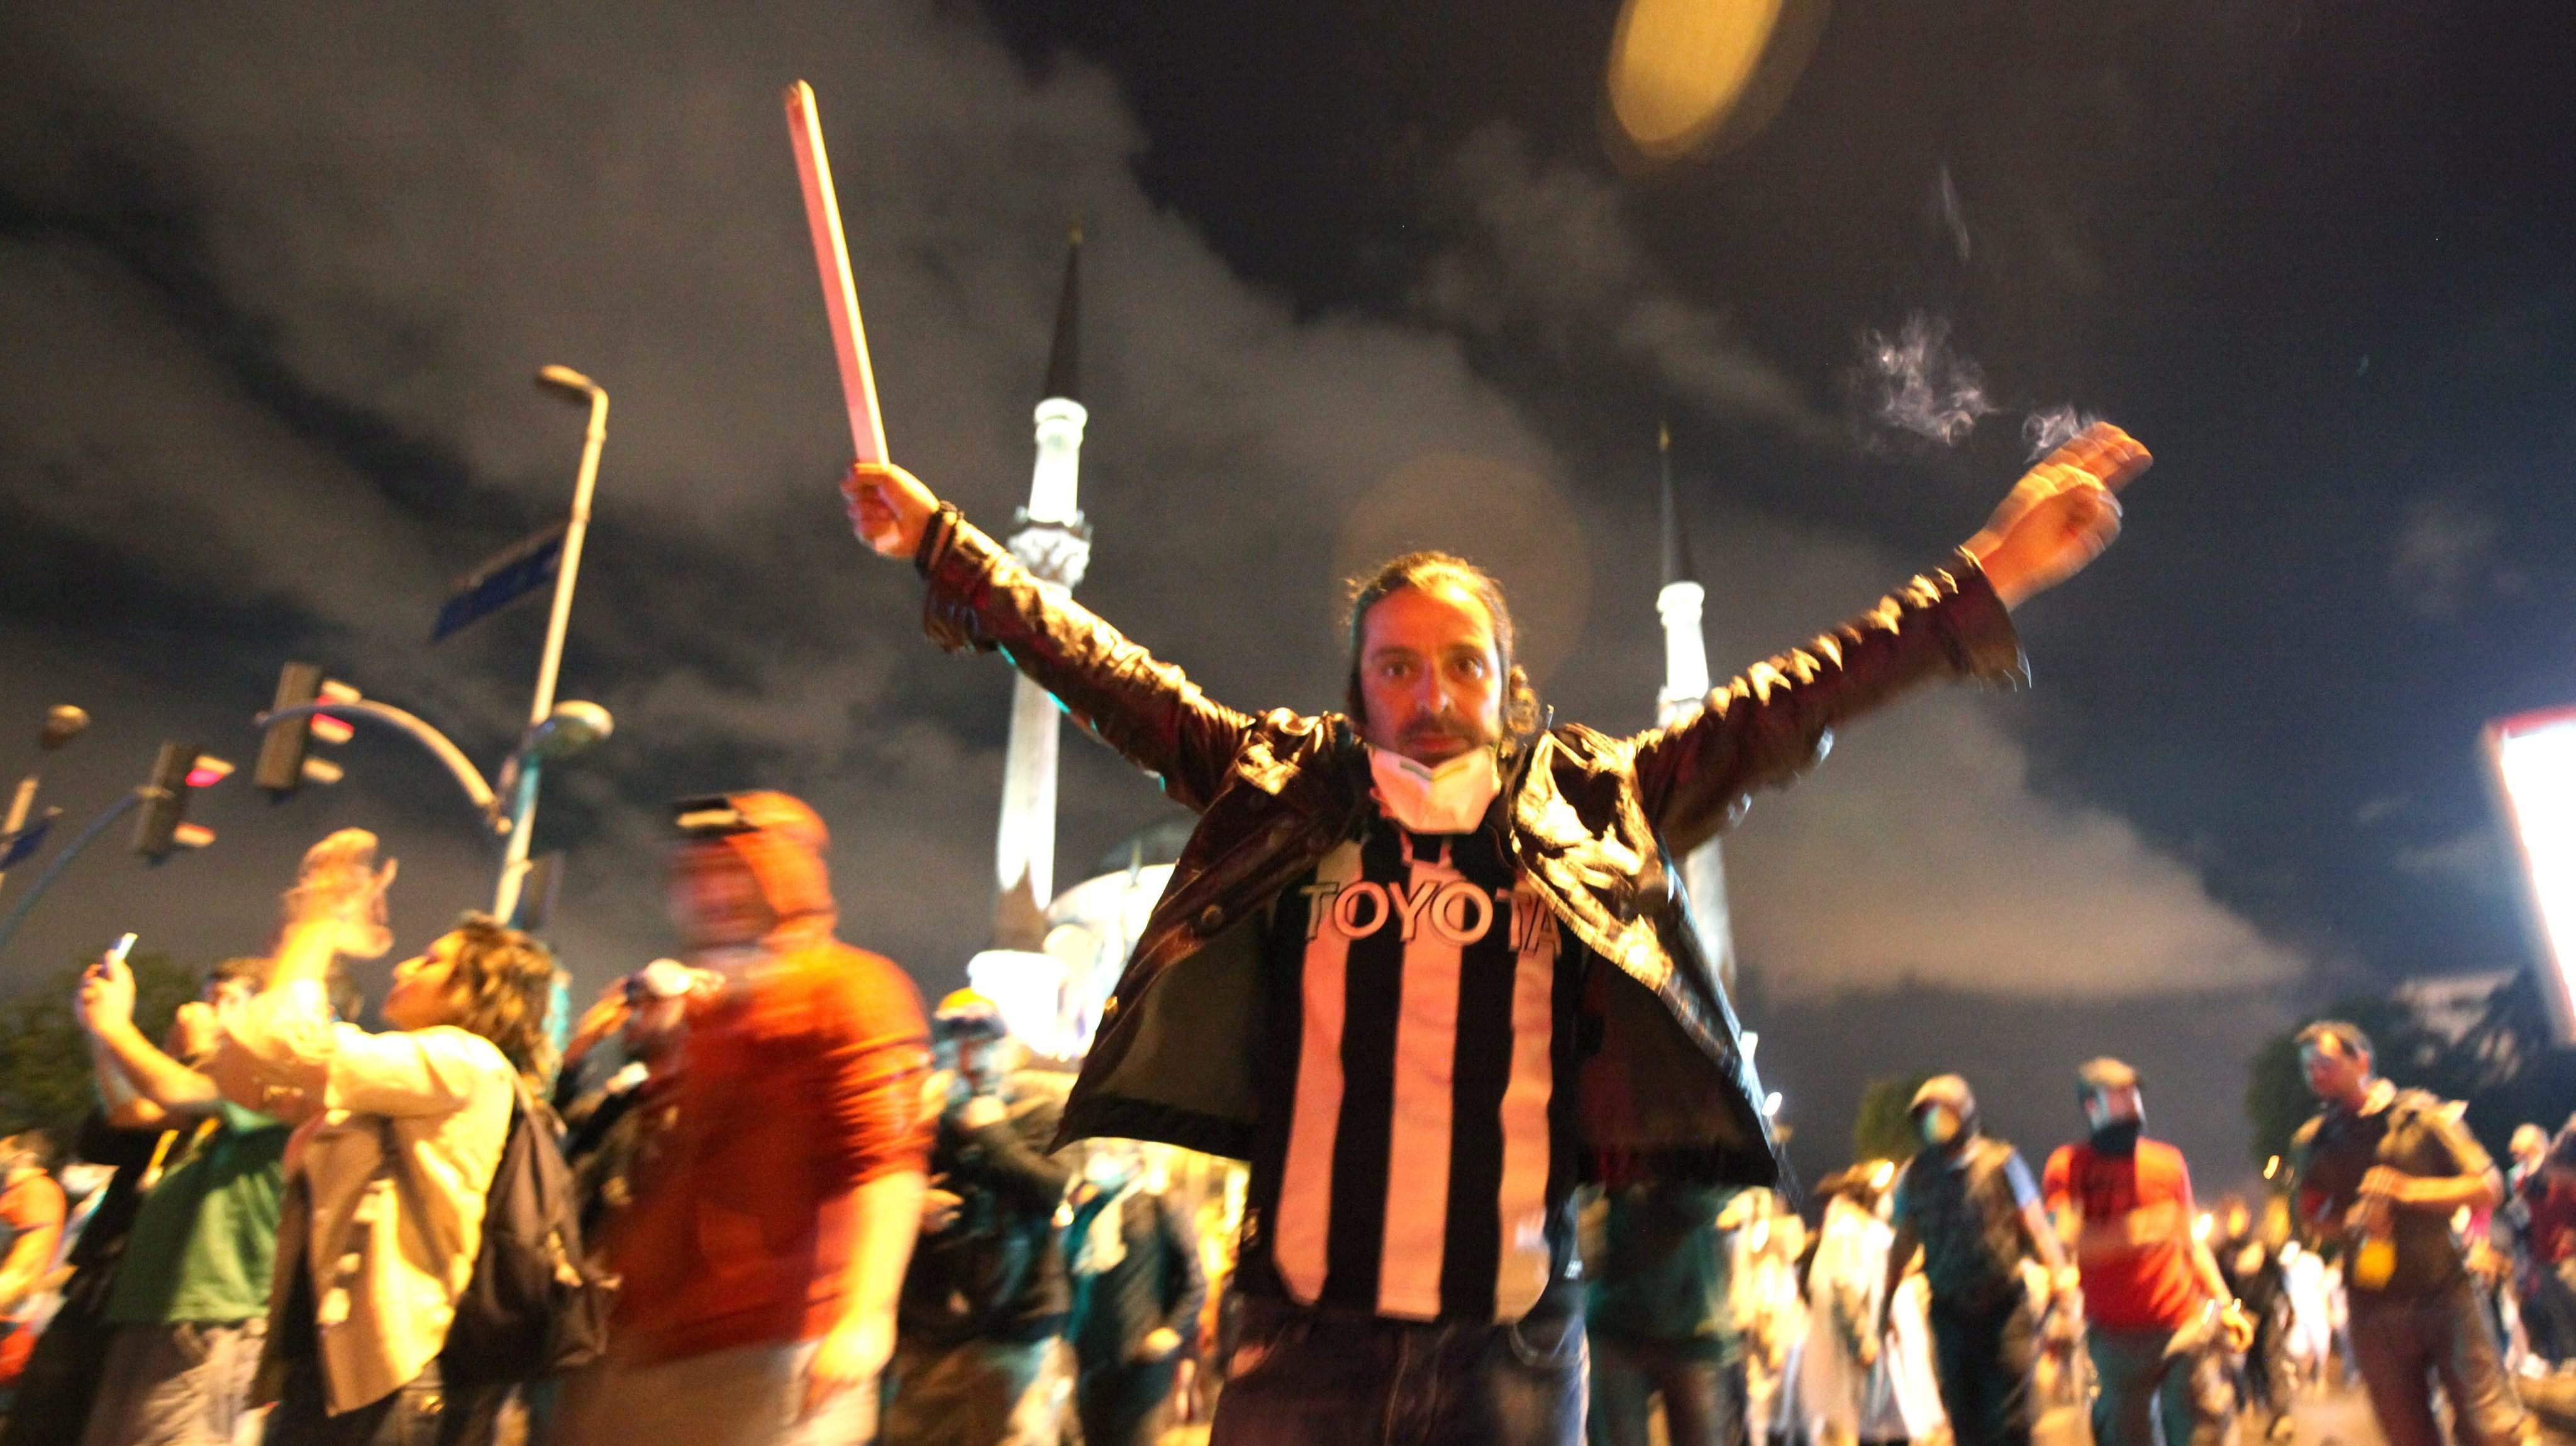 In Turkey, Protesters Say Prime Minister Has Gone Too Far